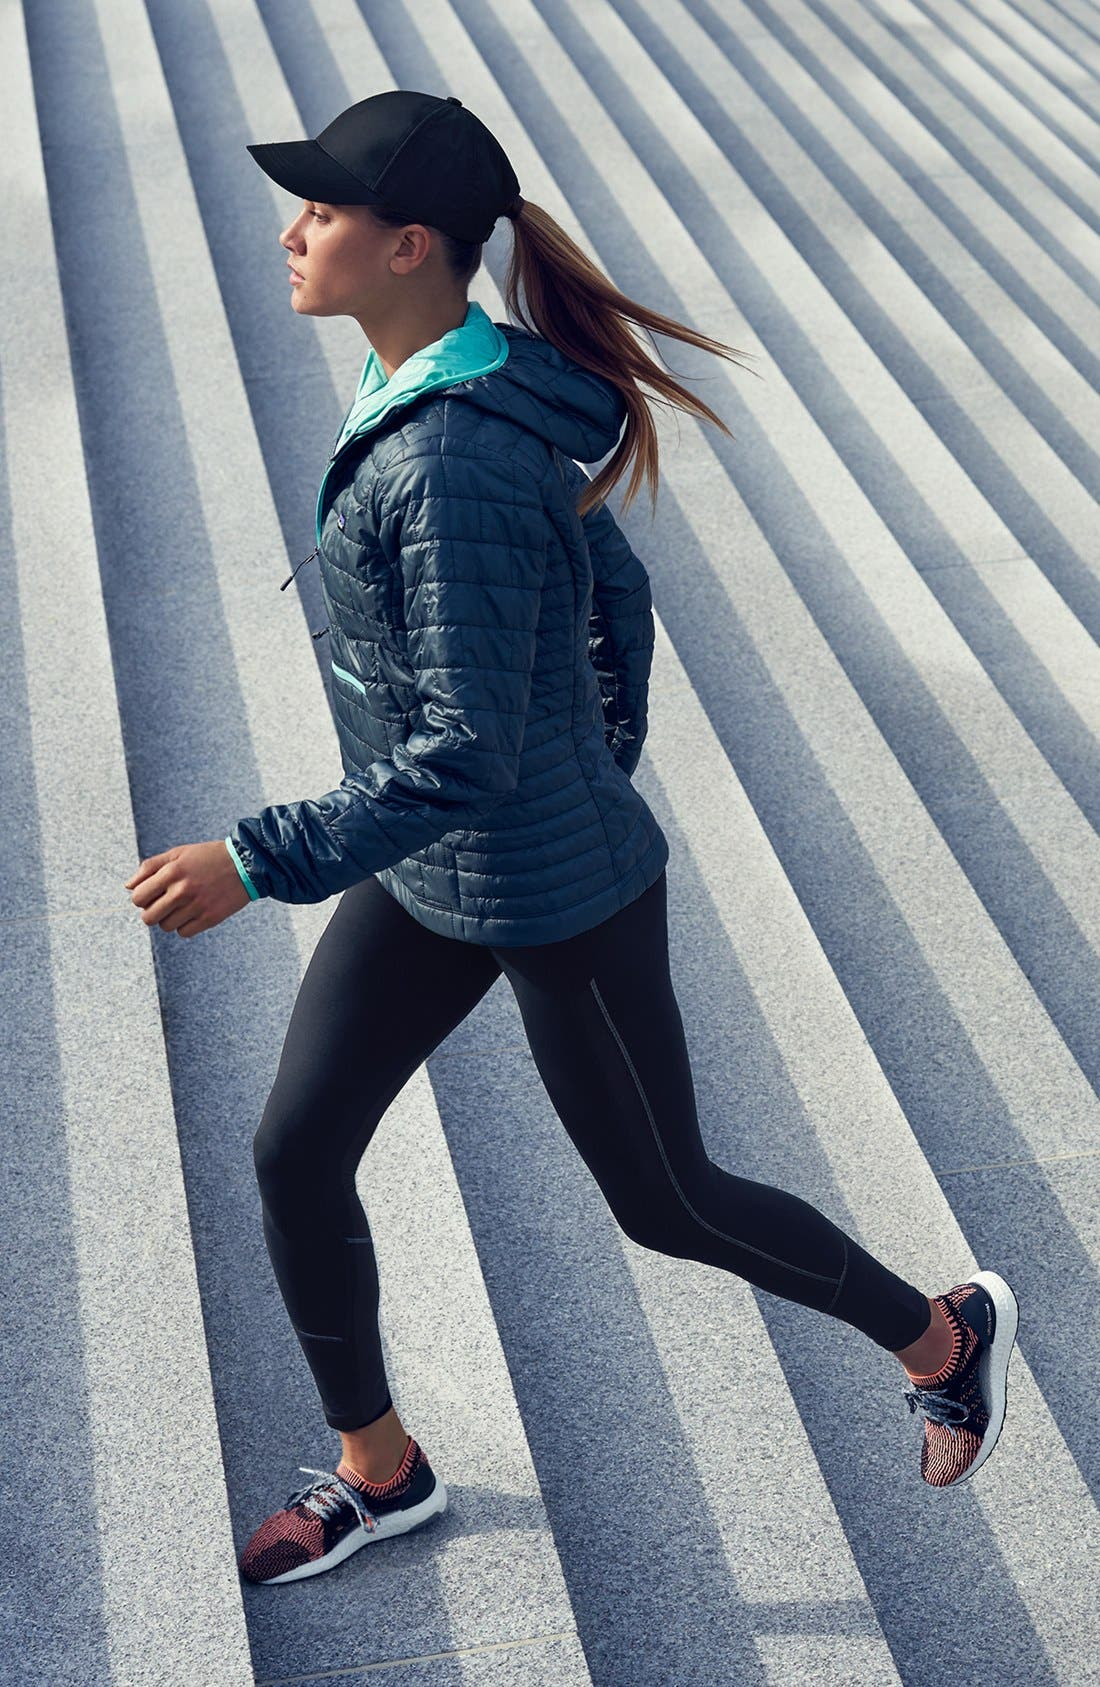 Patagonia Jacket & Zella Leggings Outfit with Accessories